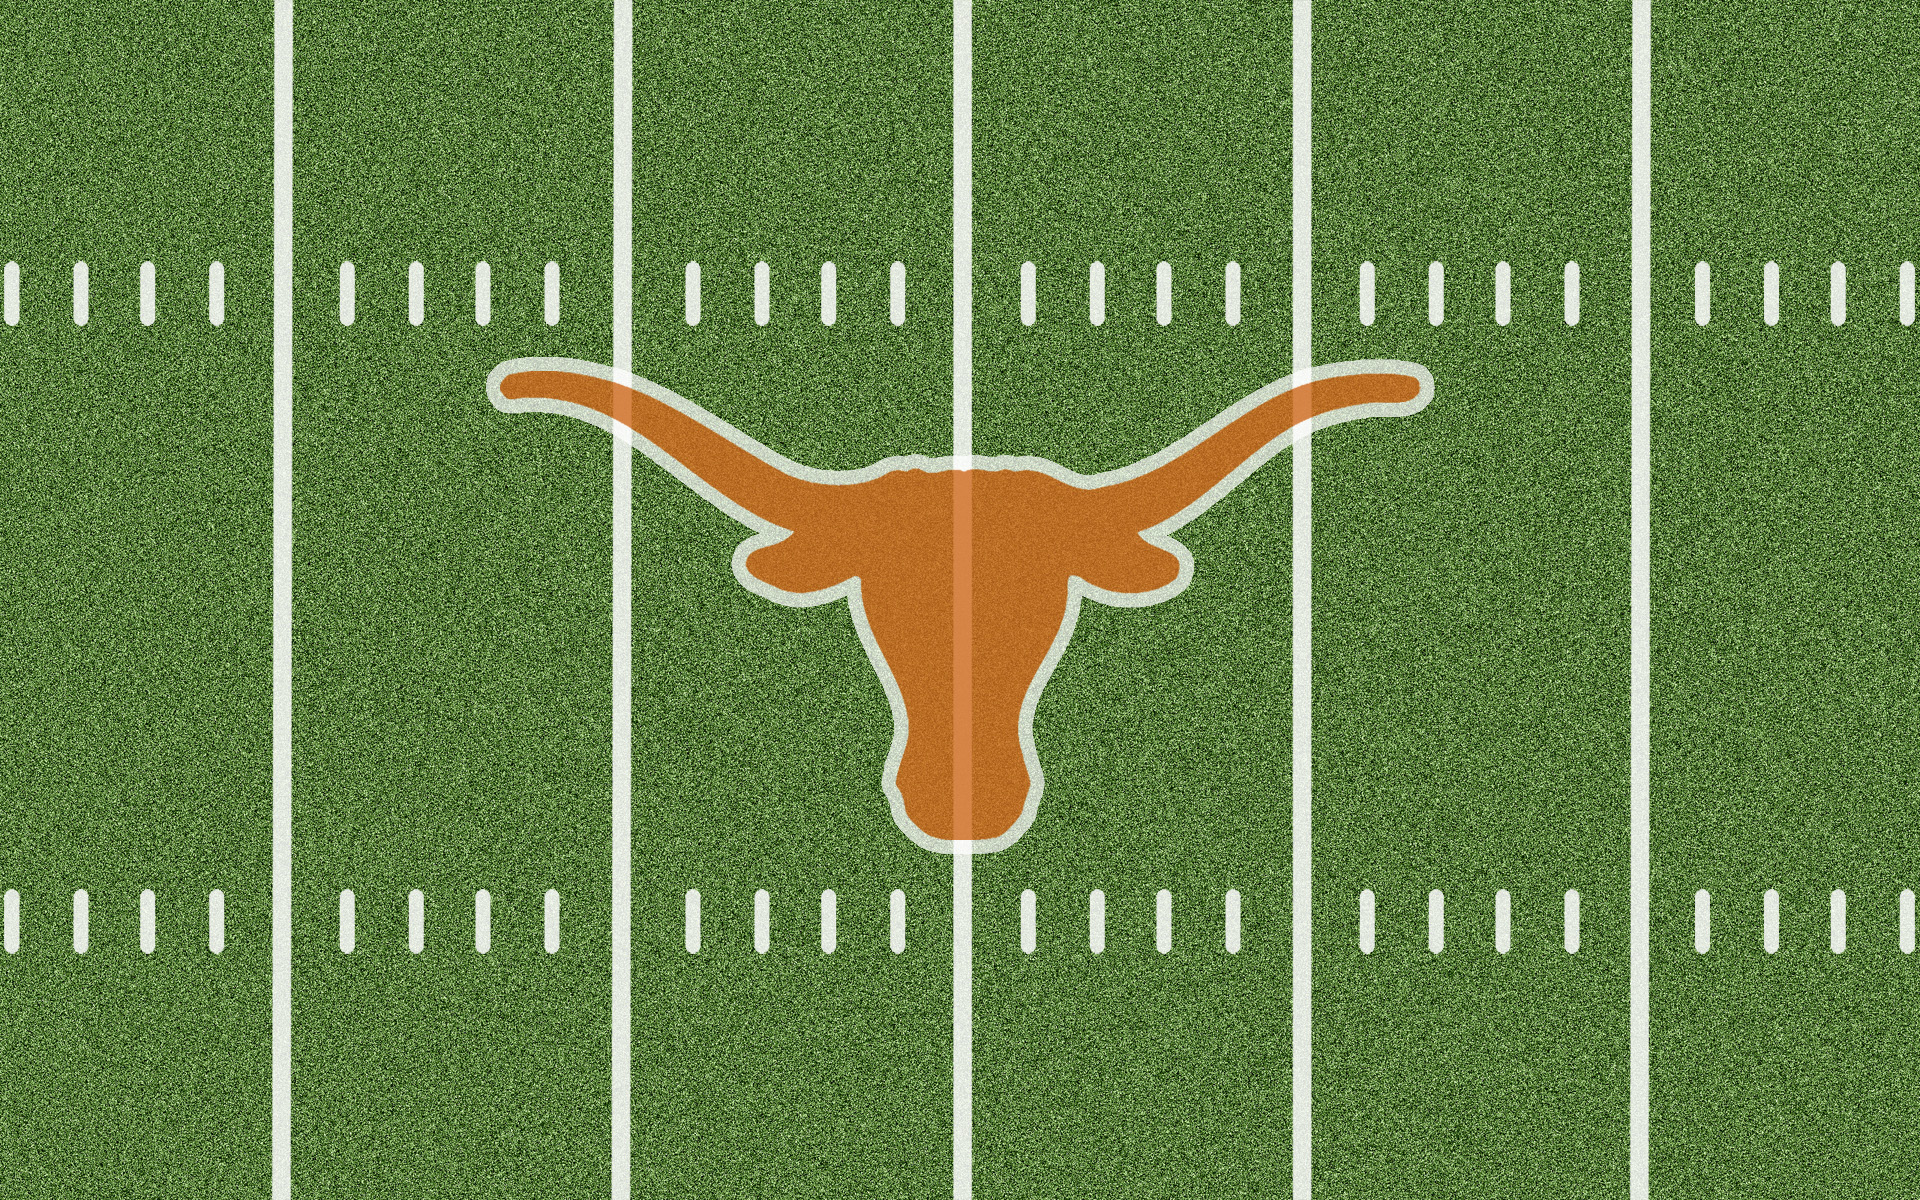 10 Best Images About Texas Longhorns On Pinterest